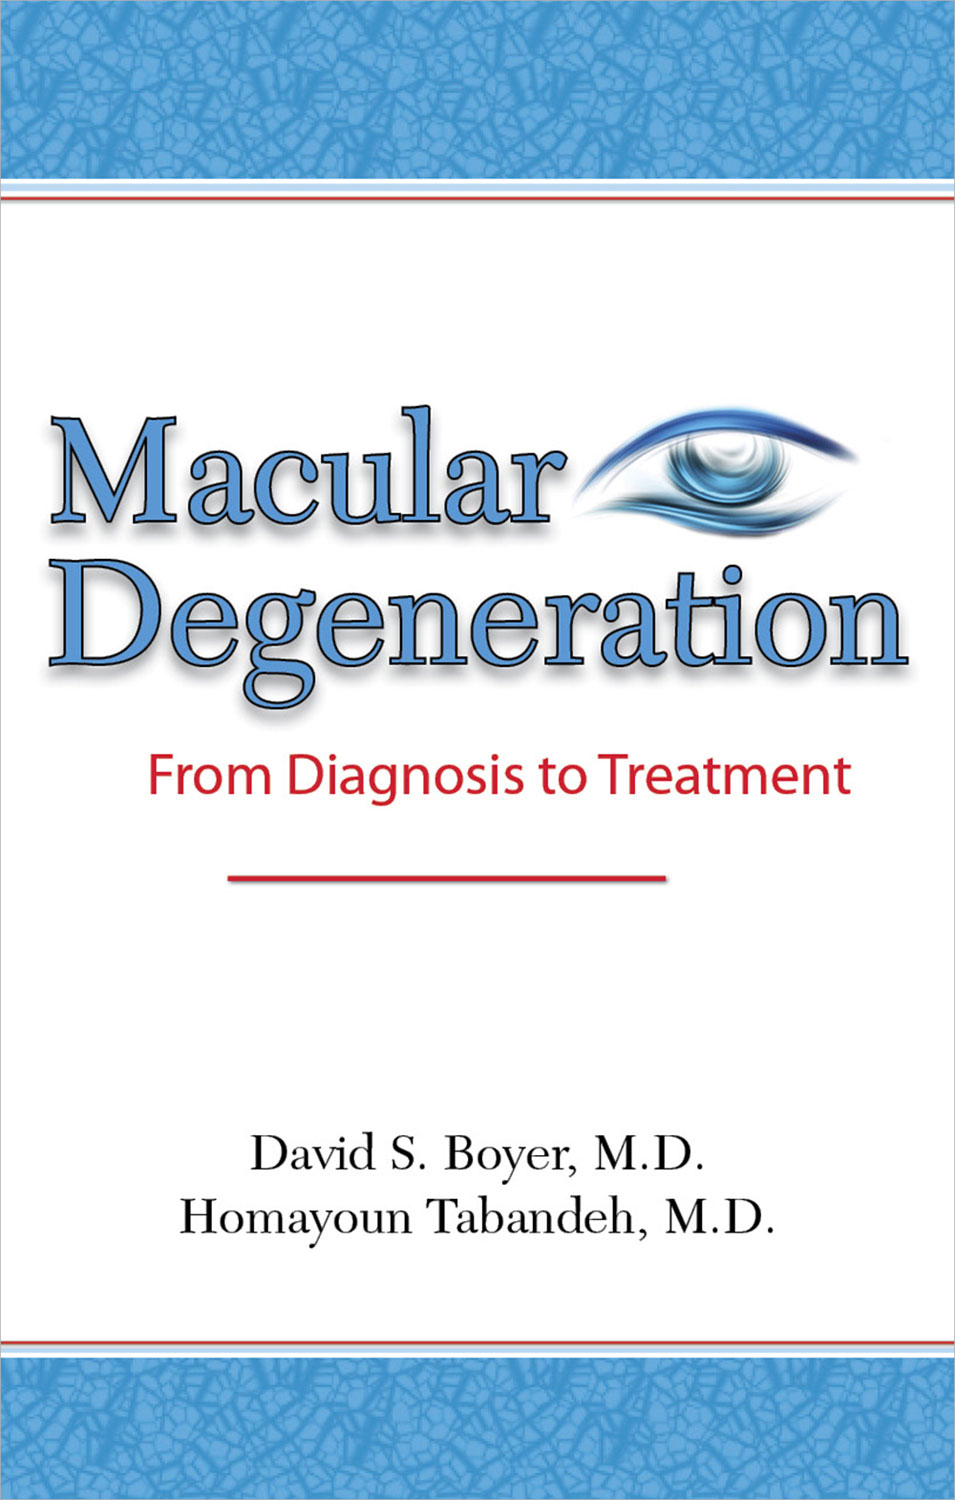 Macular Degeneration: From Diagnosis to Treatment